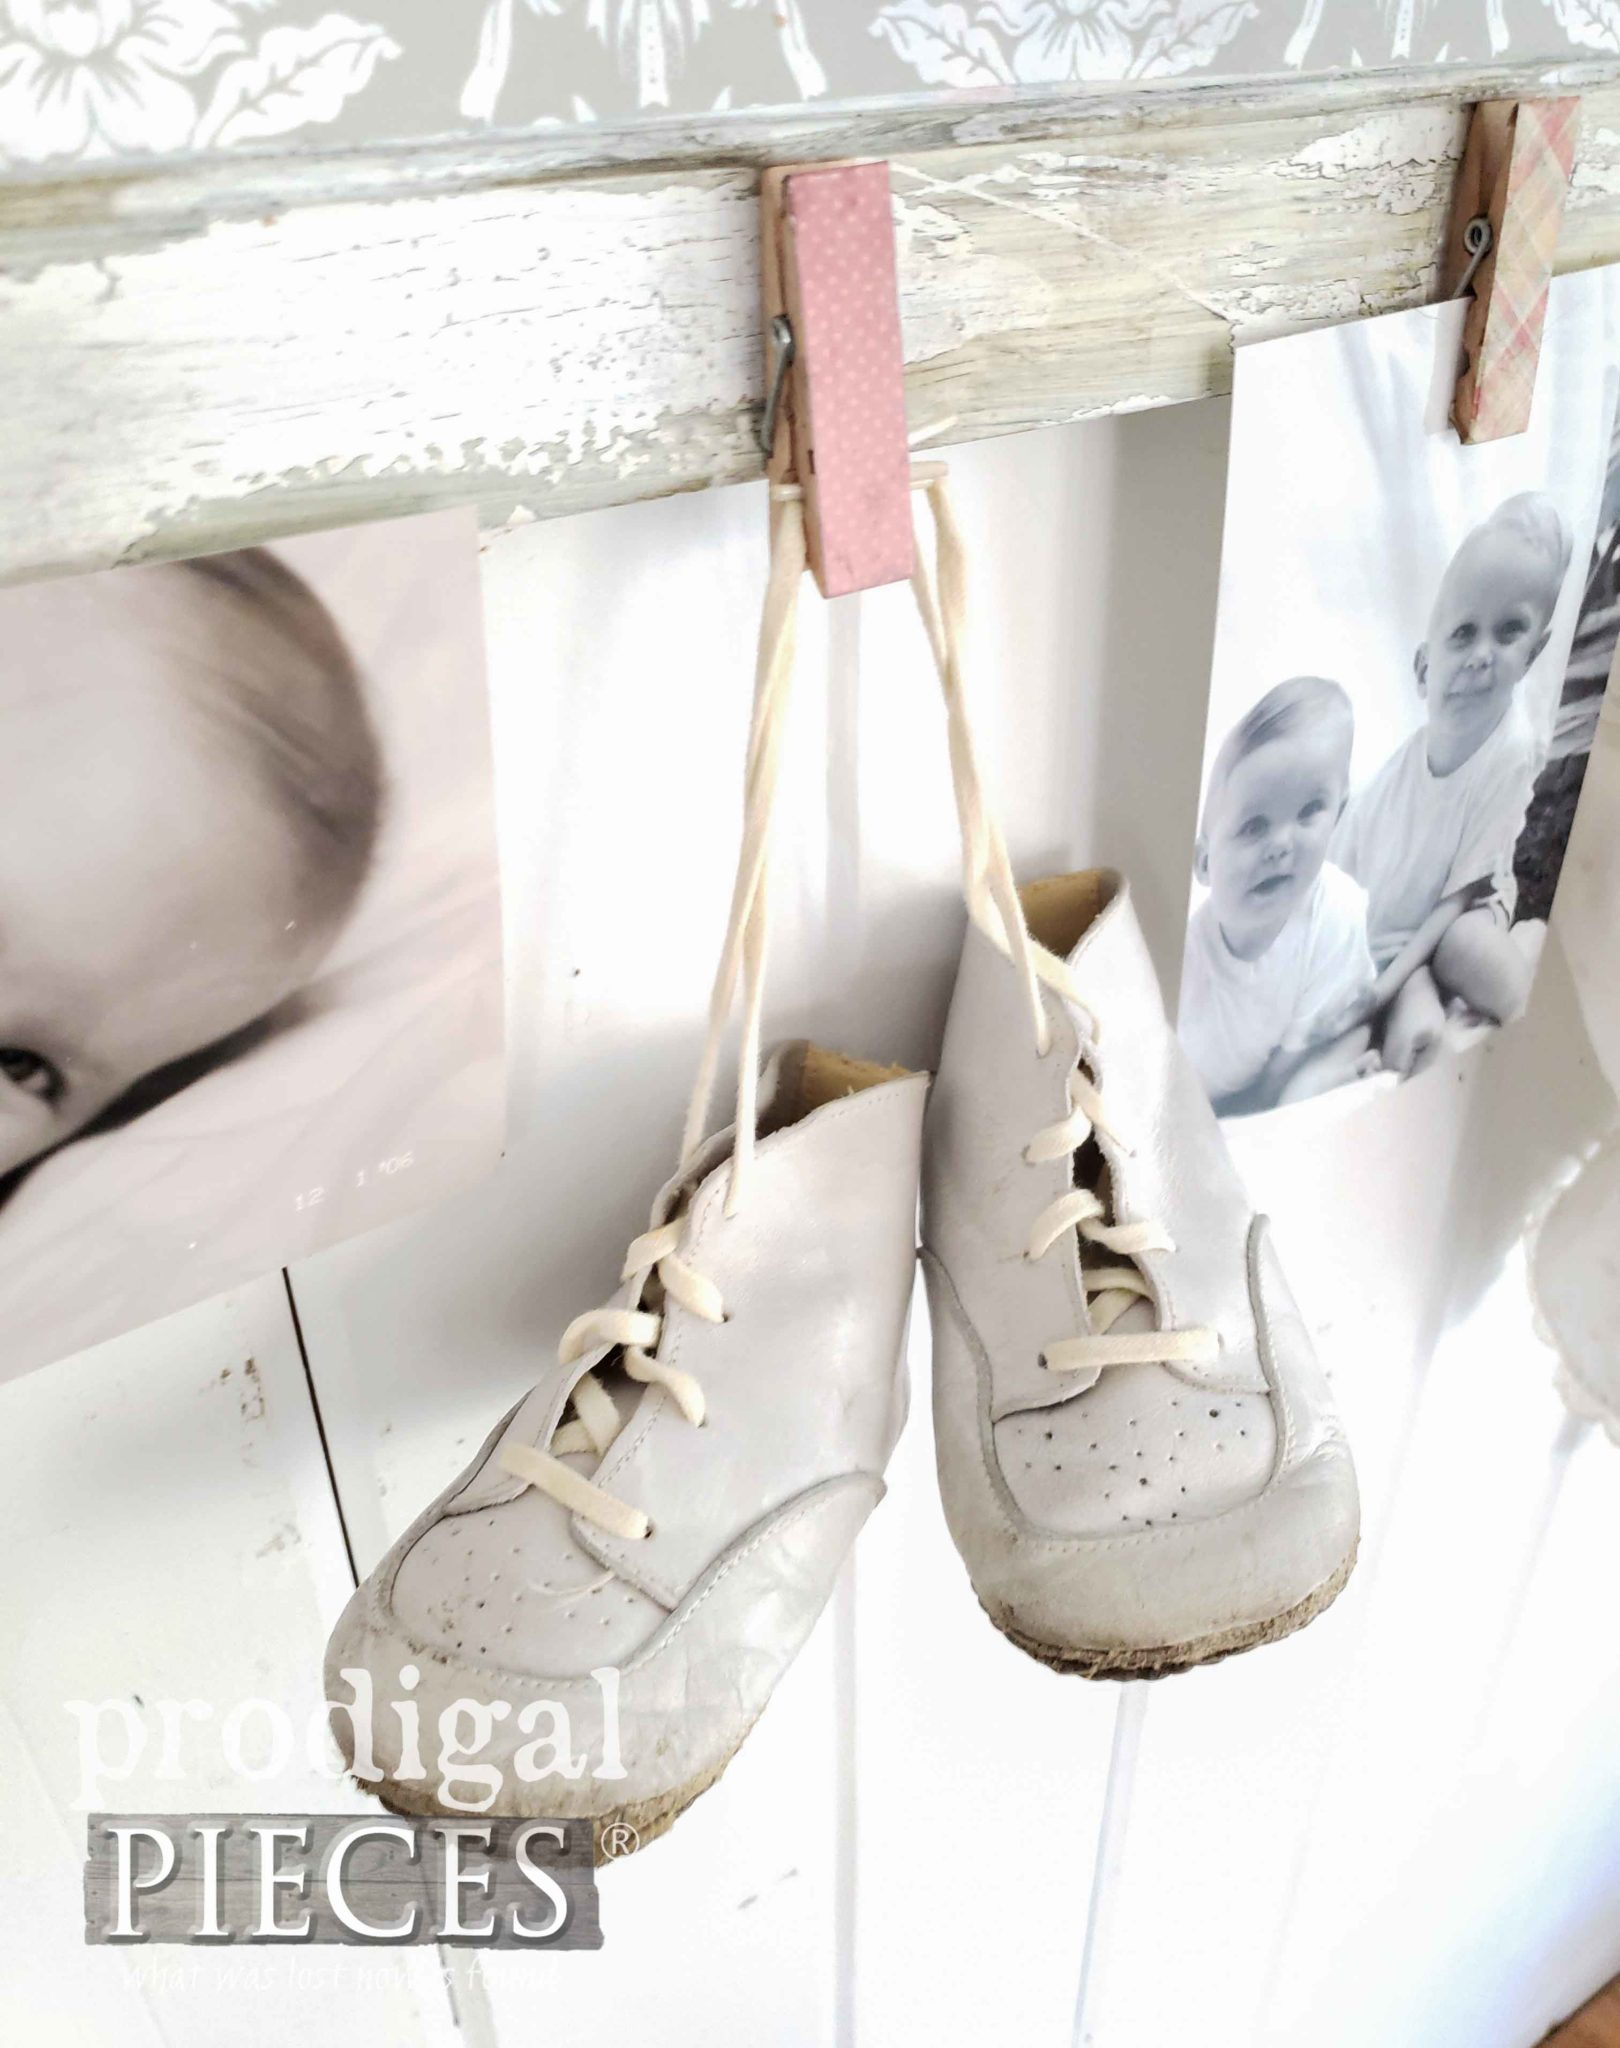 Vintage Baby Walker Shoes in White Leather | Available at Prodigal Pieces | prodigalpieces.com